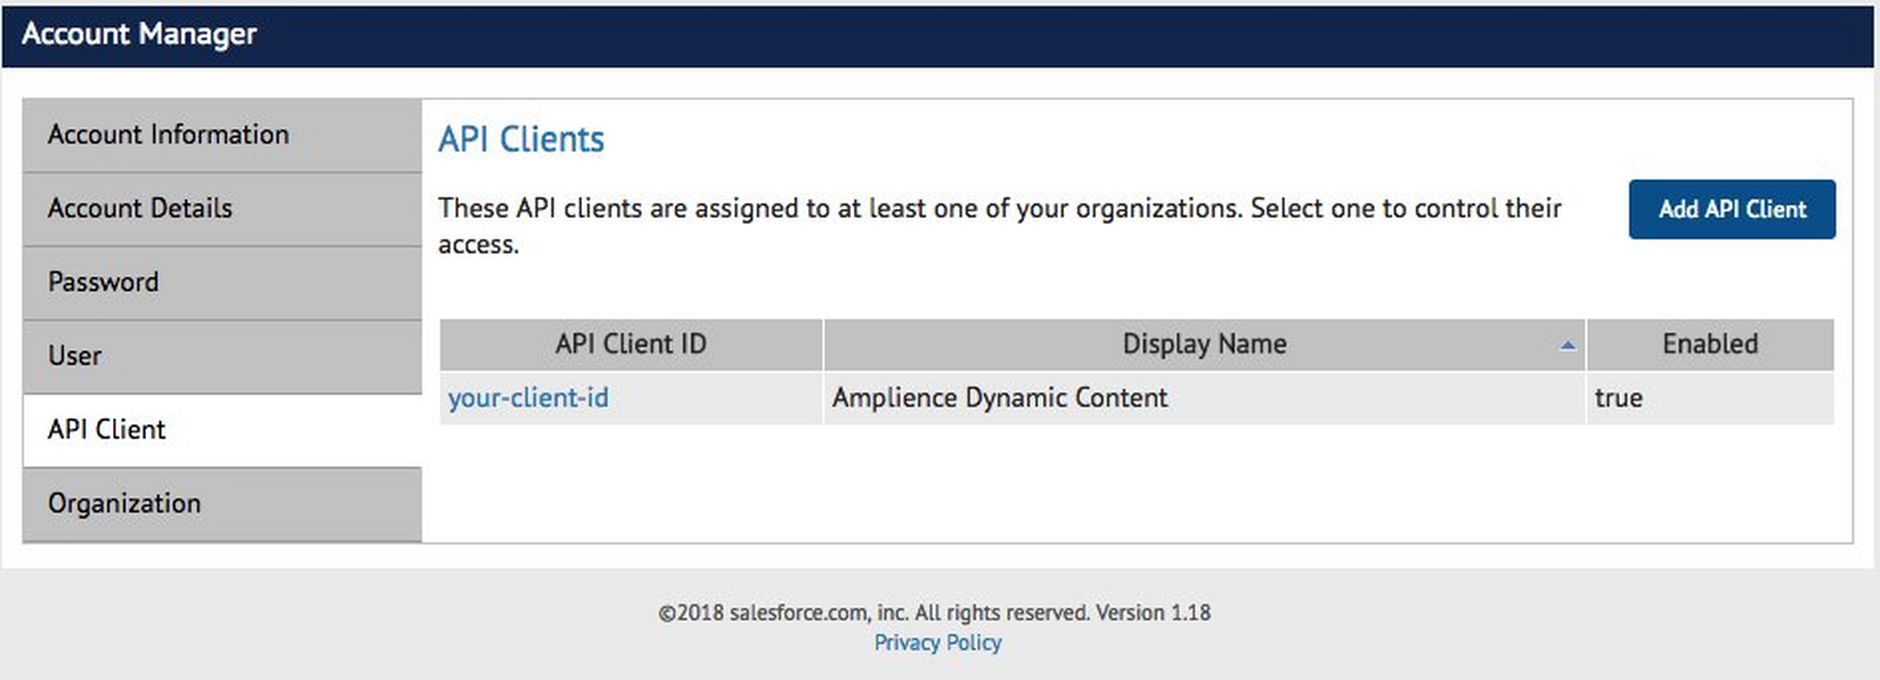 The new API Client ID is shown in the list